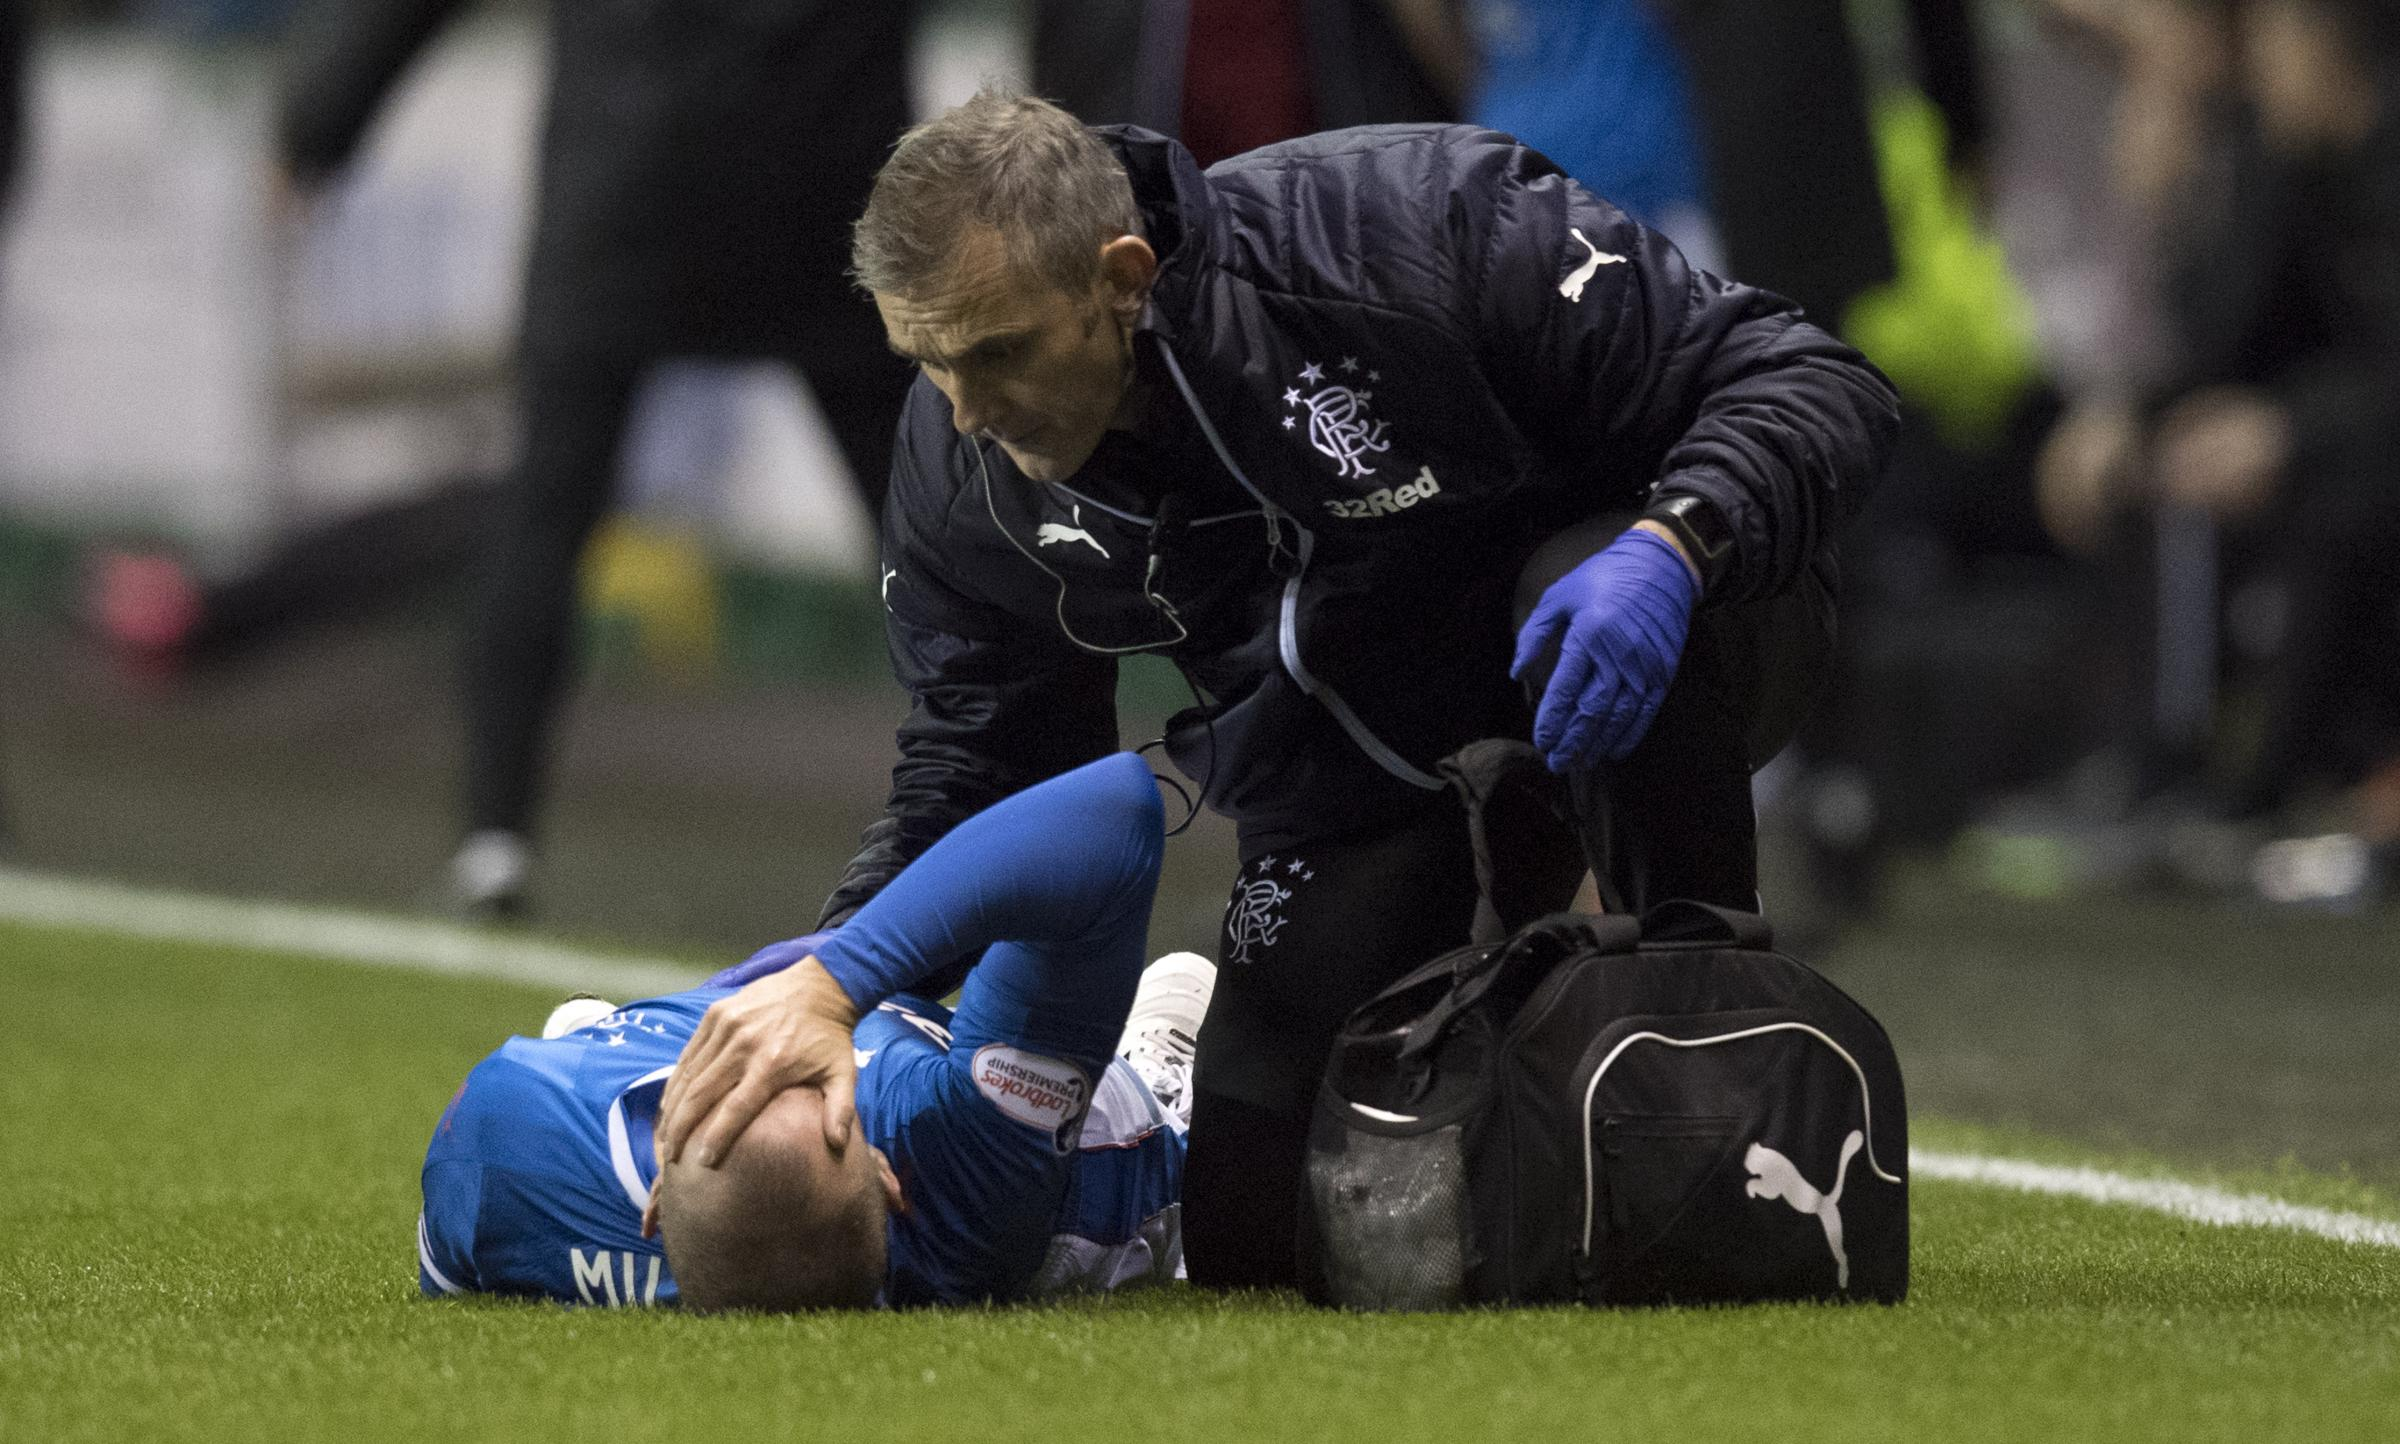 Rangers striker Kenny Miller an injury doubt for Celtic clash